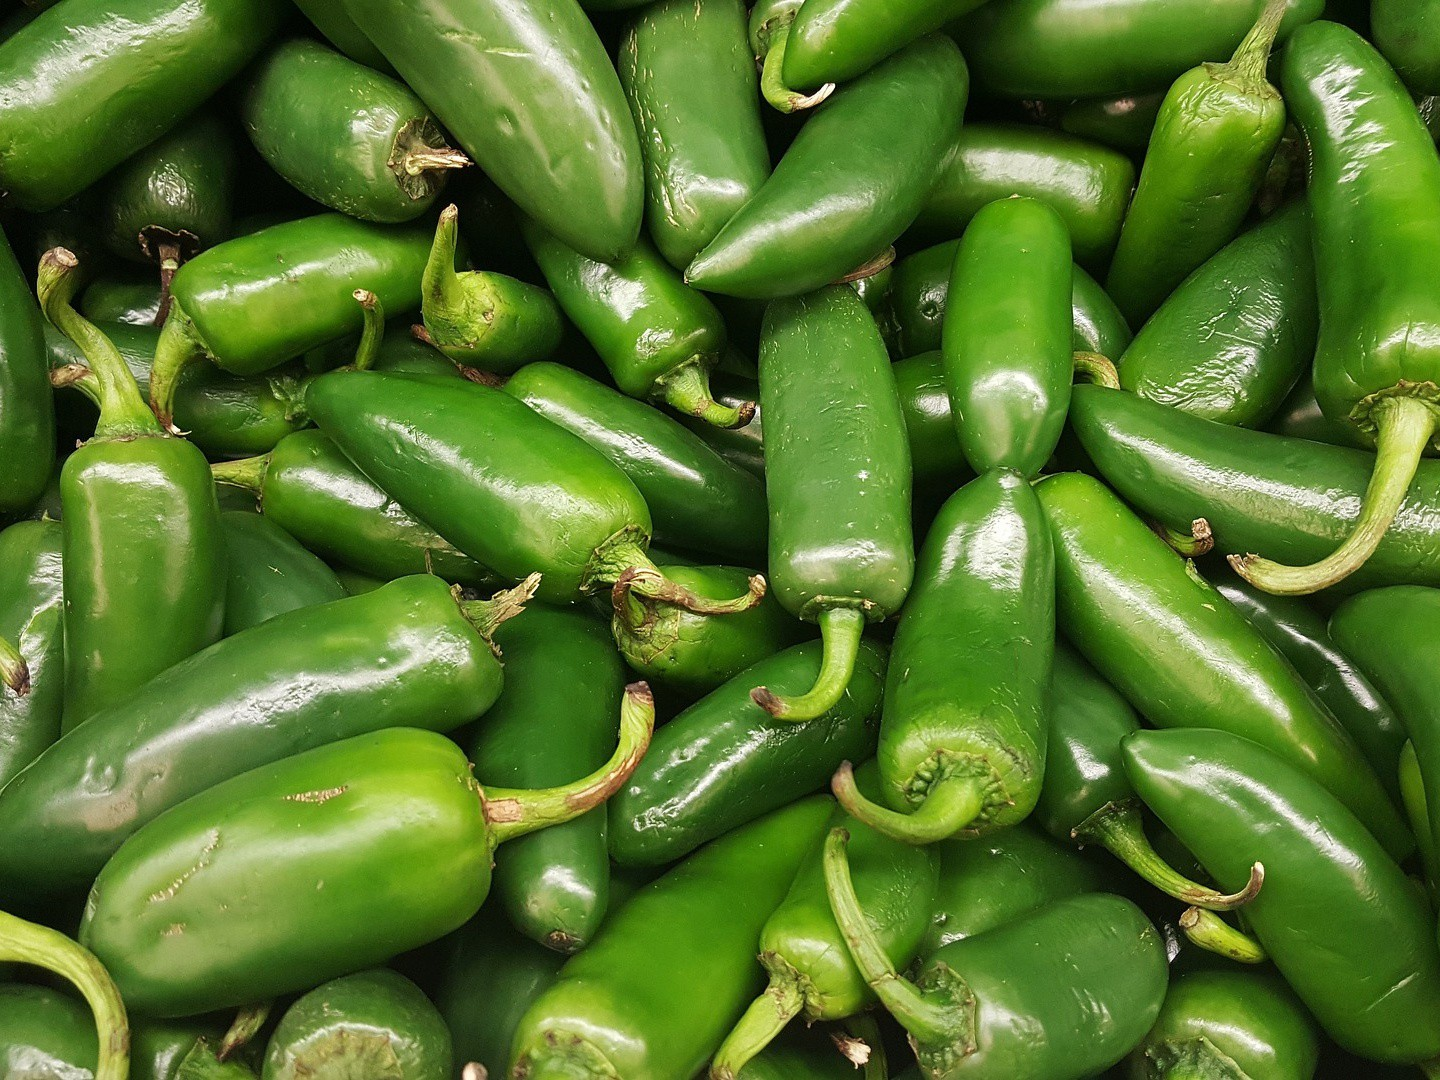 Police found approximately 121 kilograms of cannabis mixed in with the peppers. /